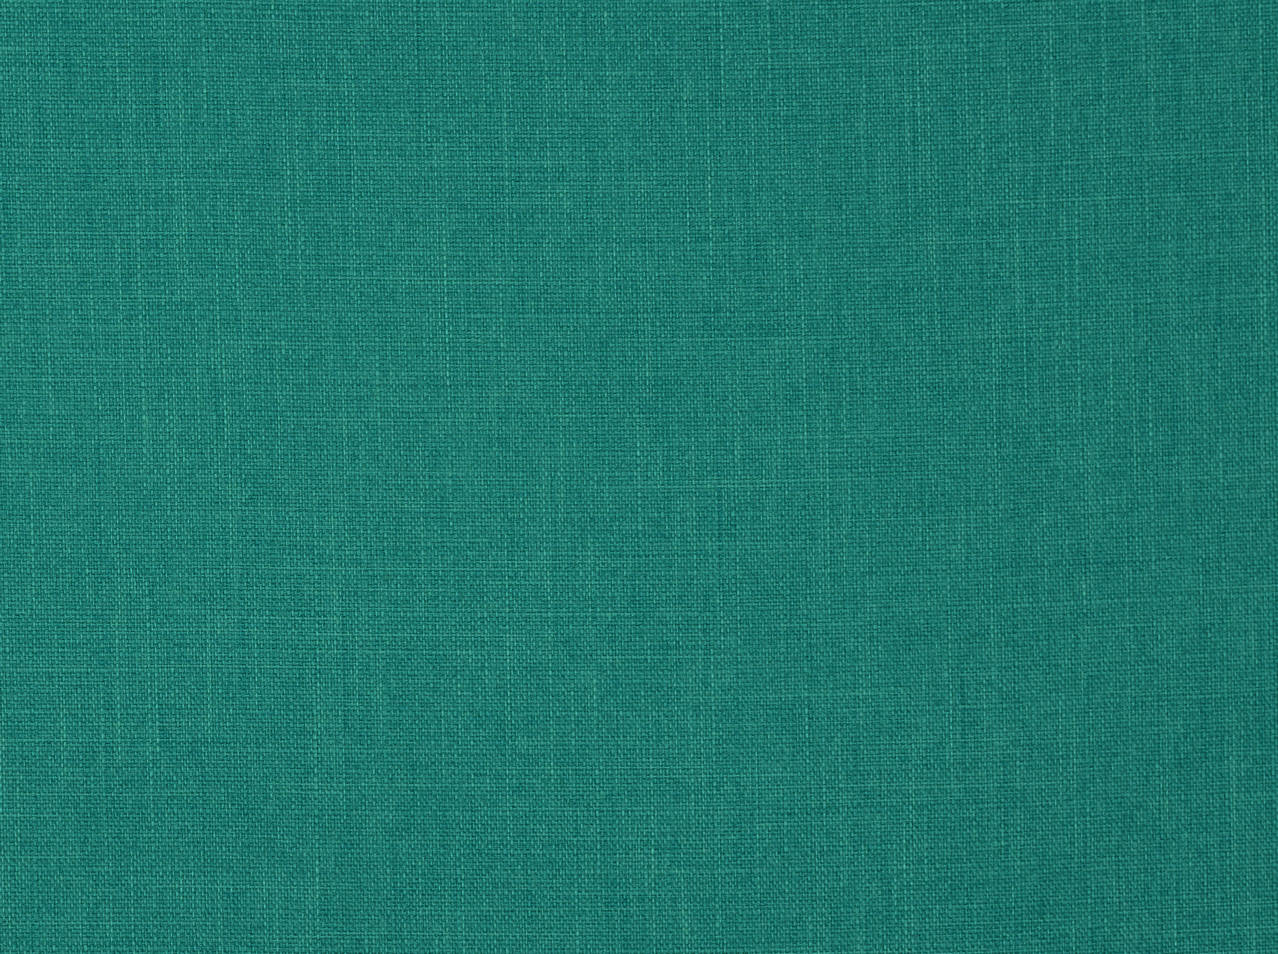 Covington Solids%20and%20Textures York